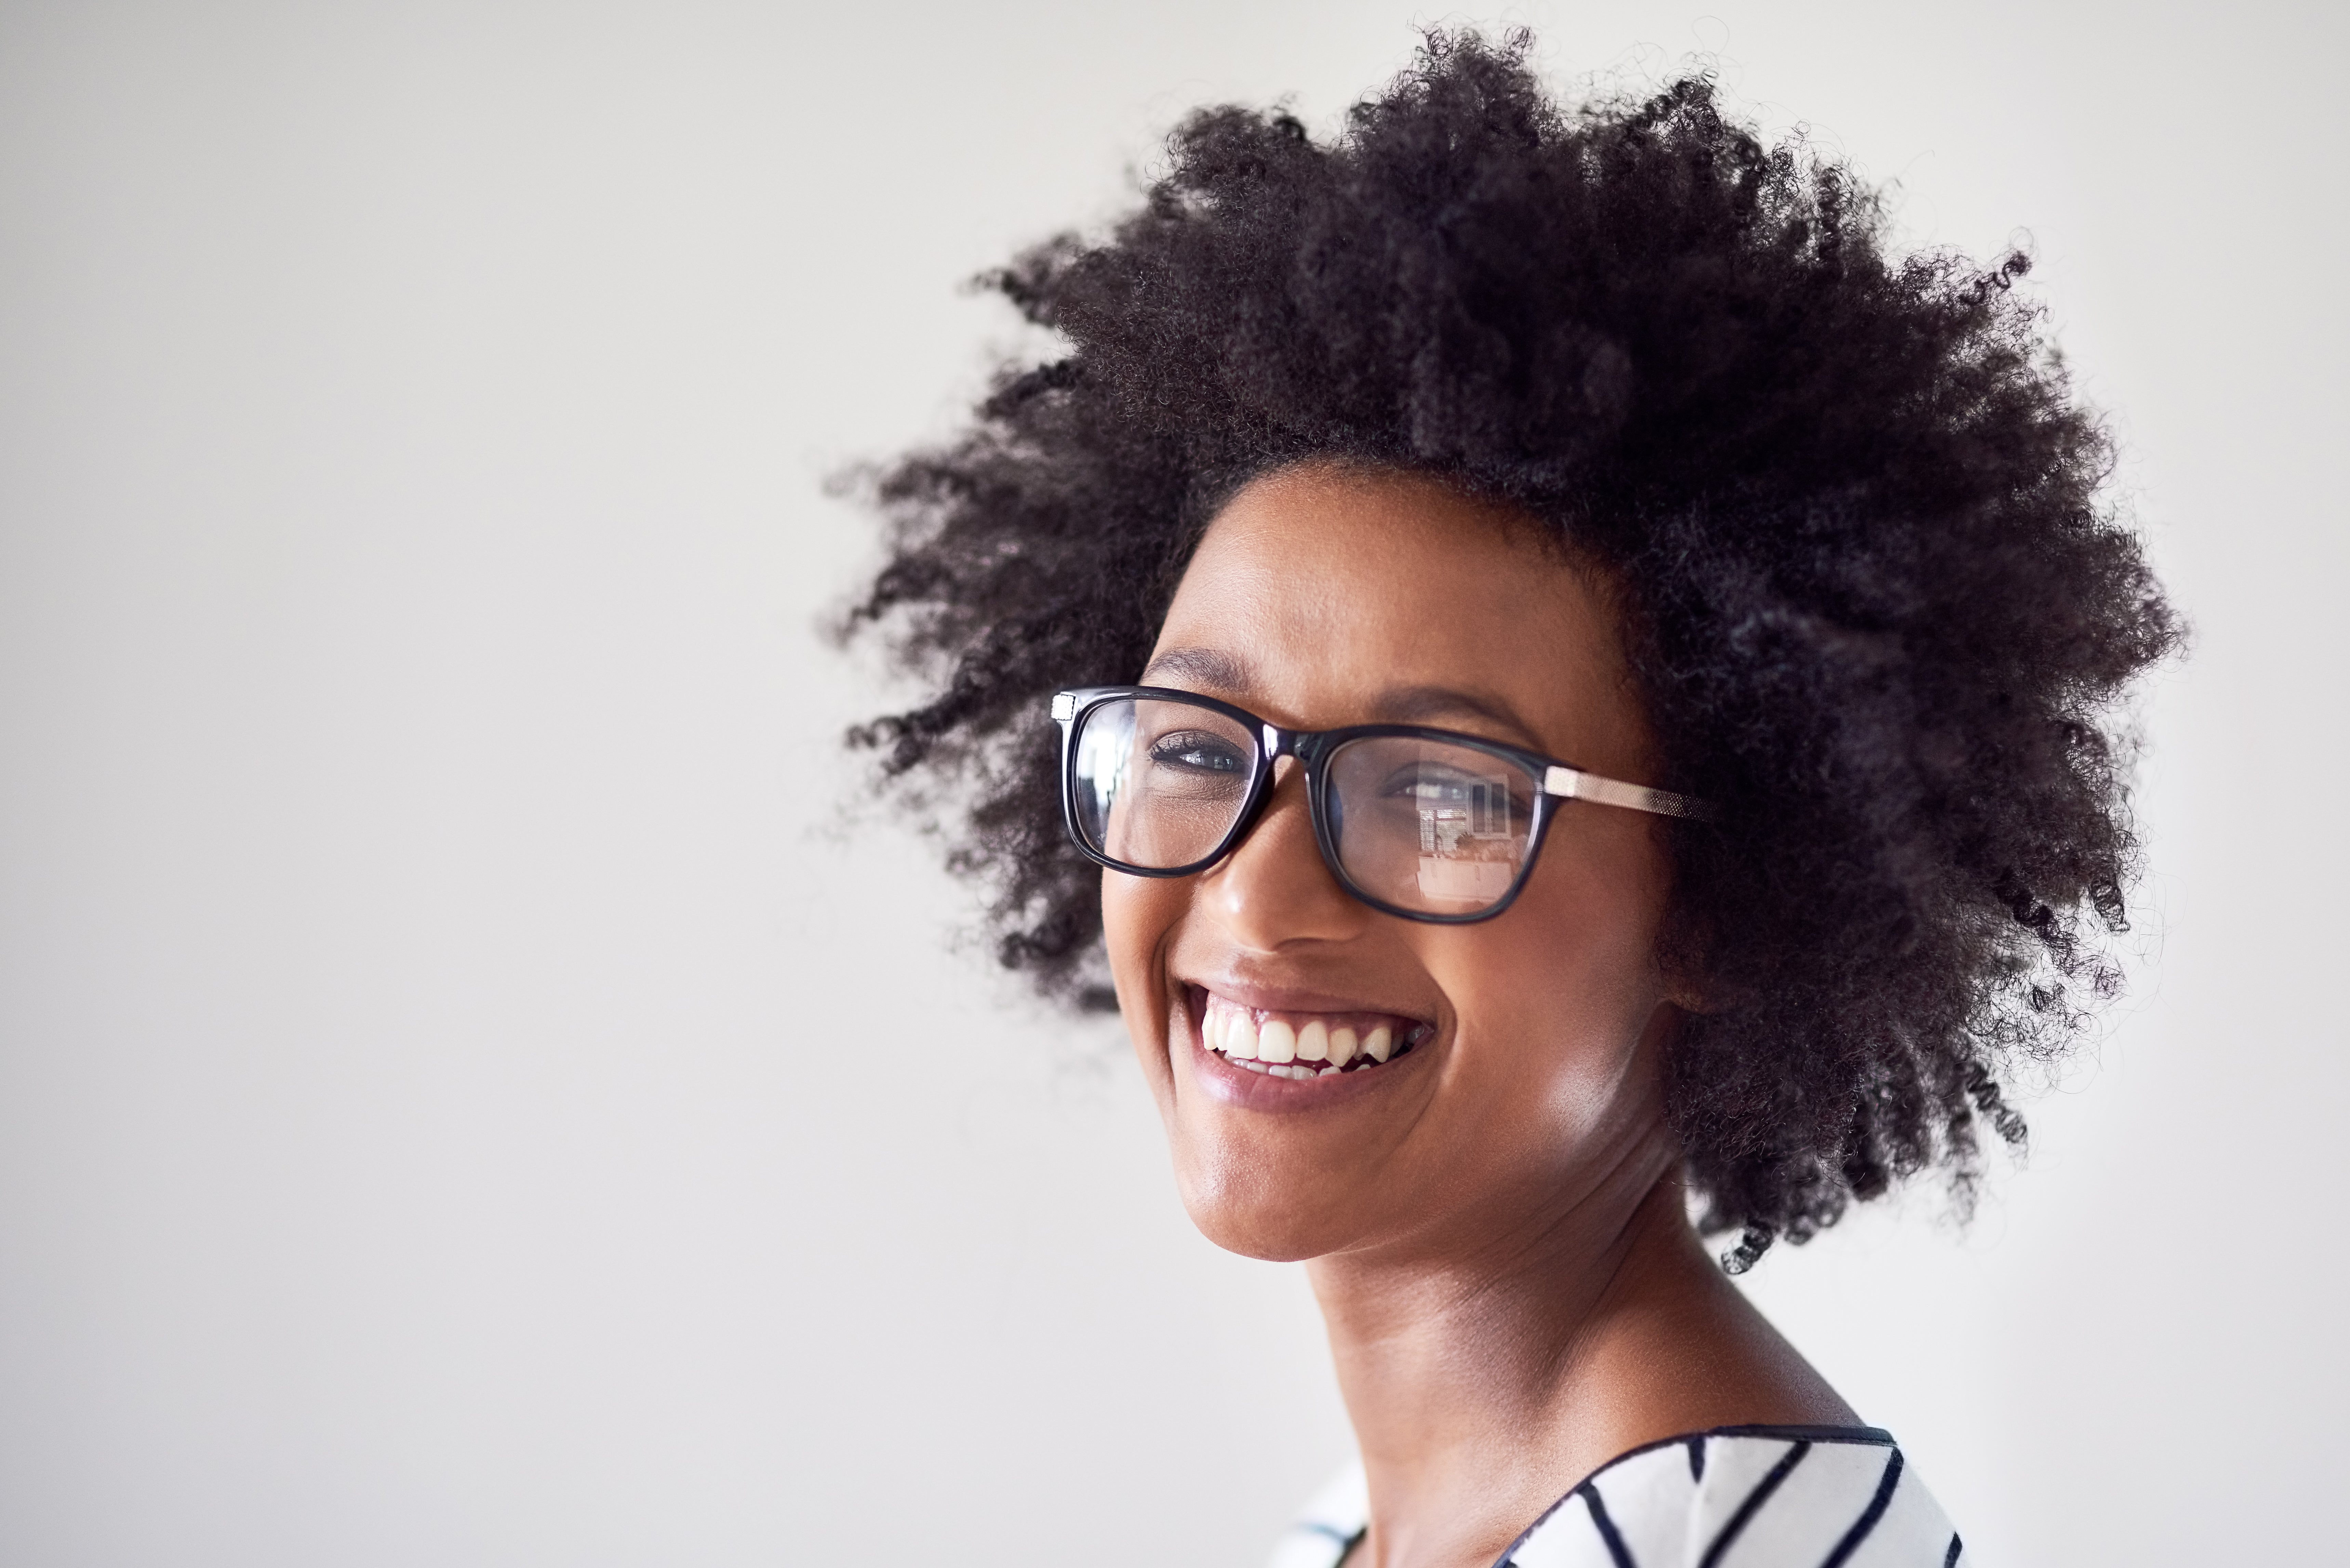 3 Easy Tests That Will Help Determine Your Hair's Porosity